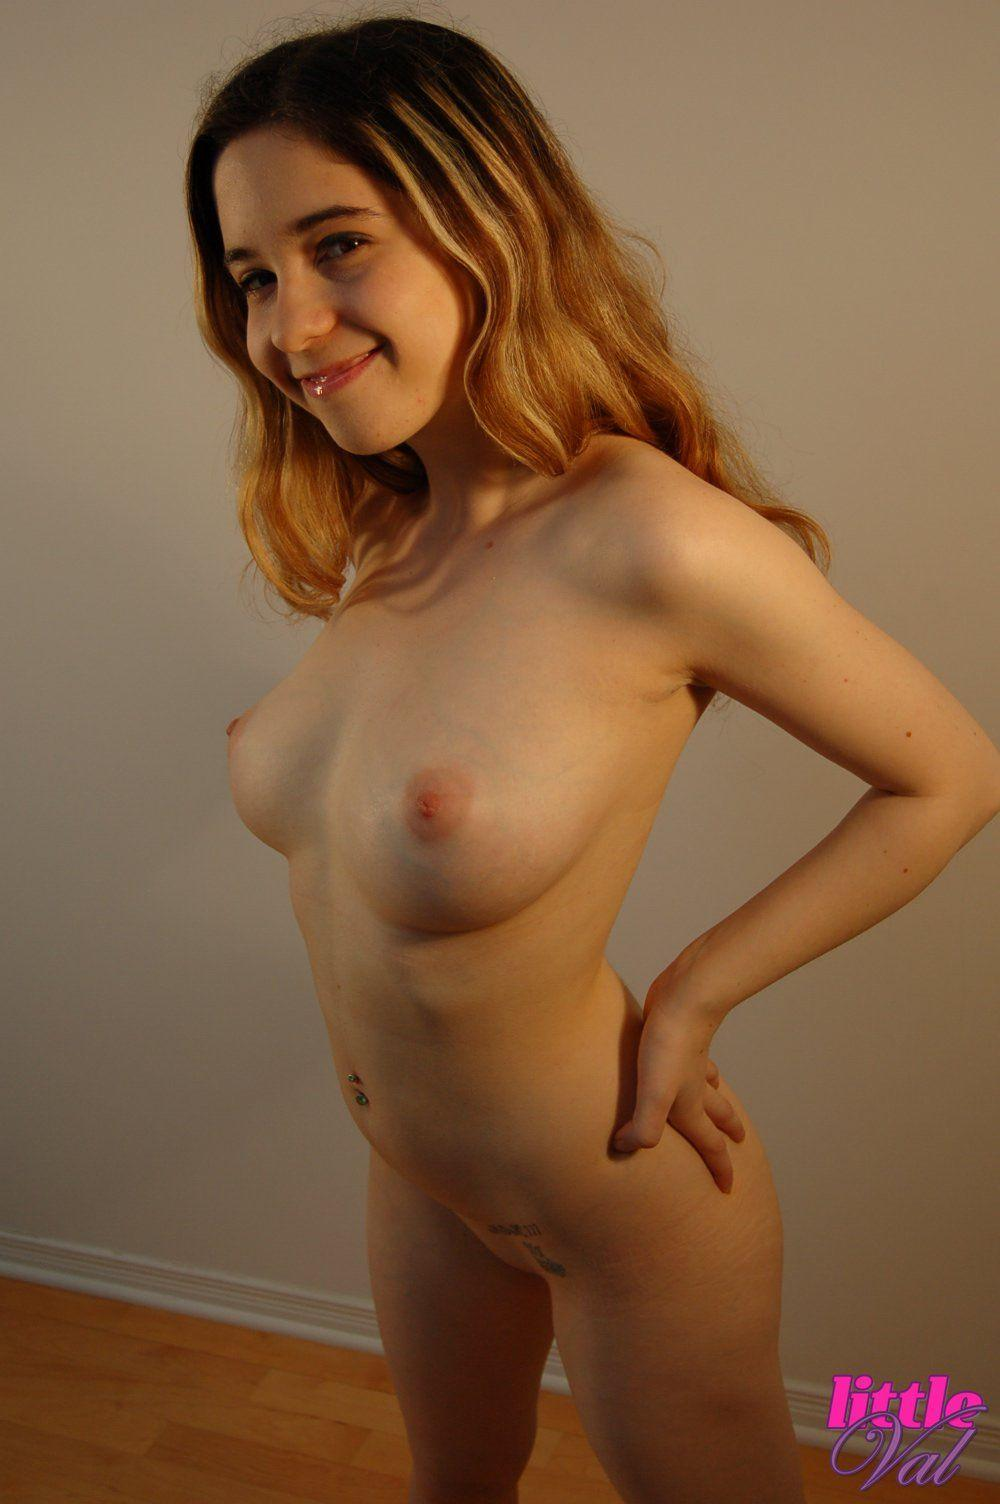 little val nude pictures